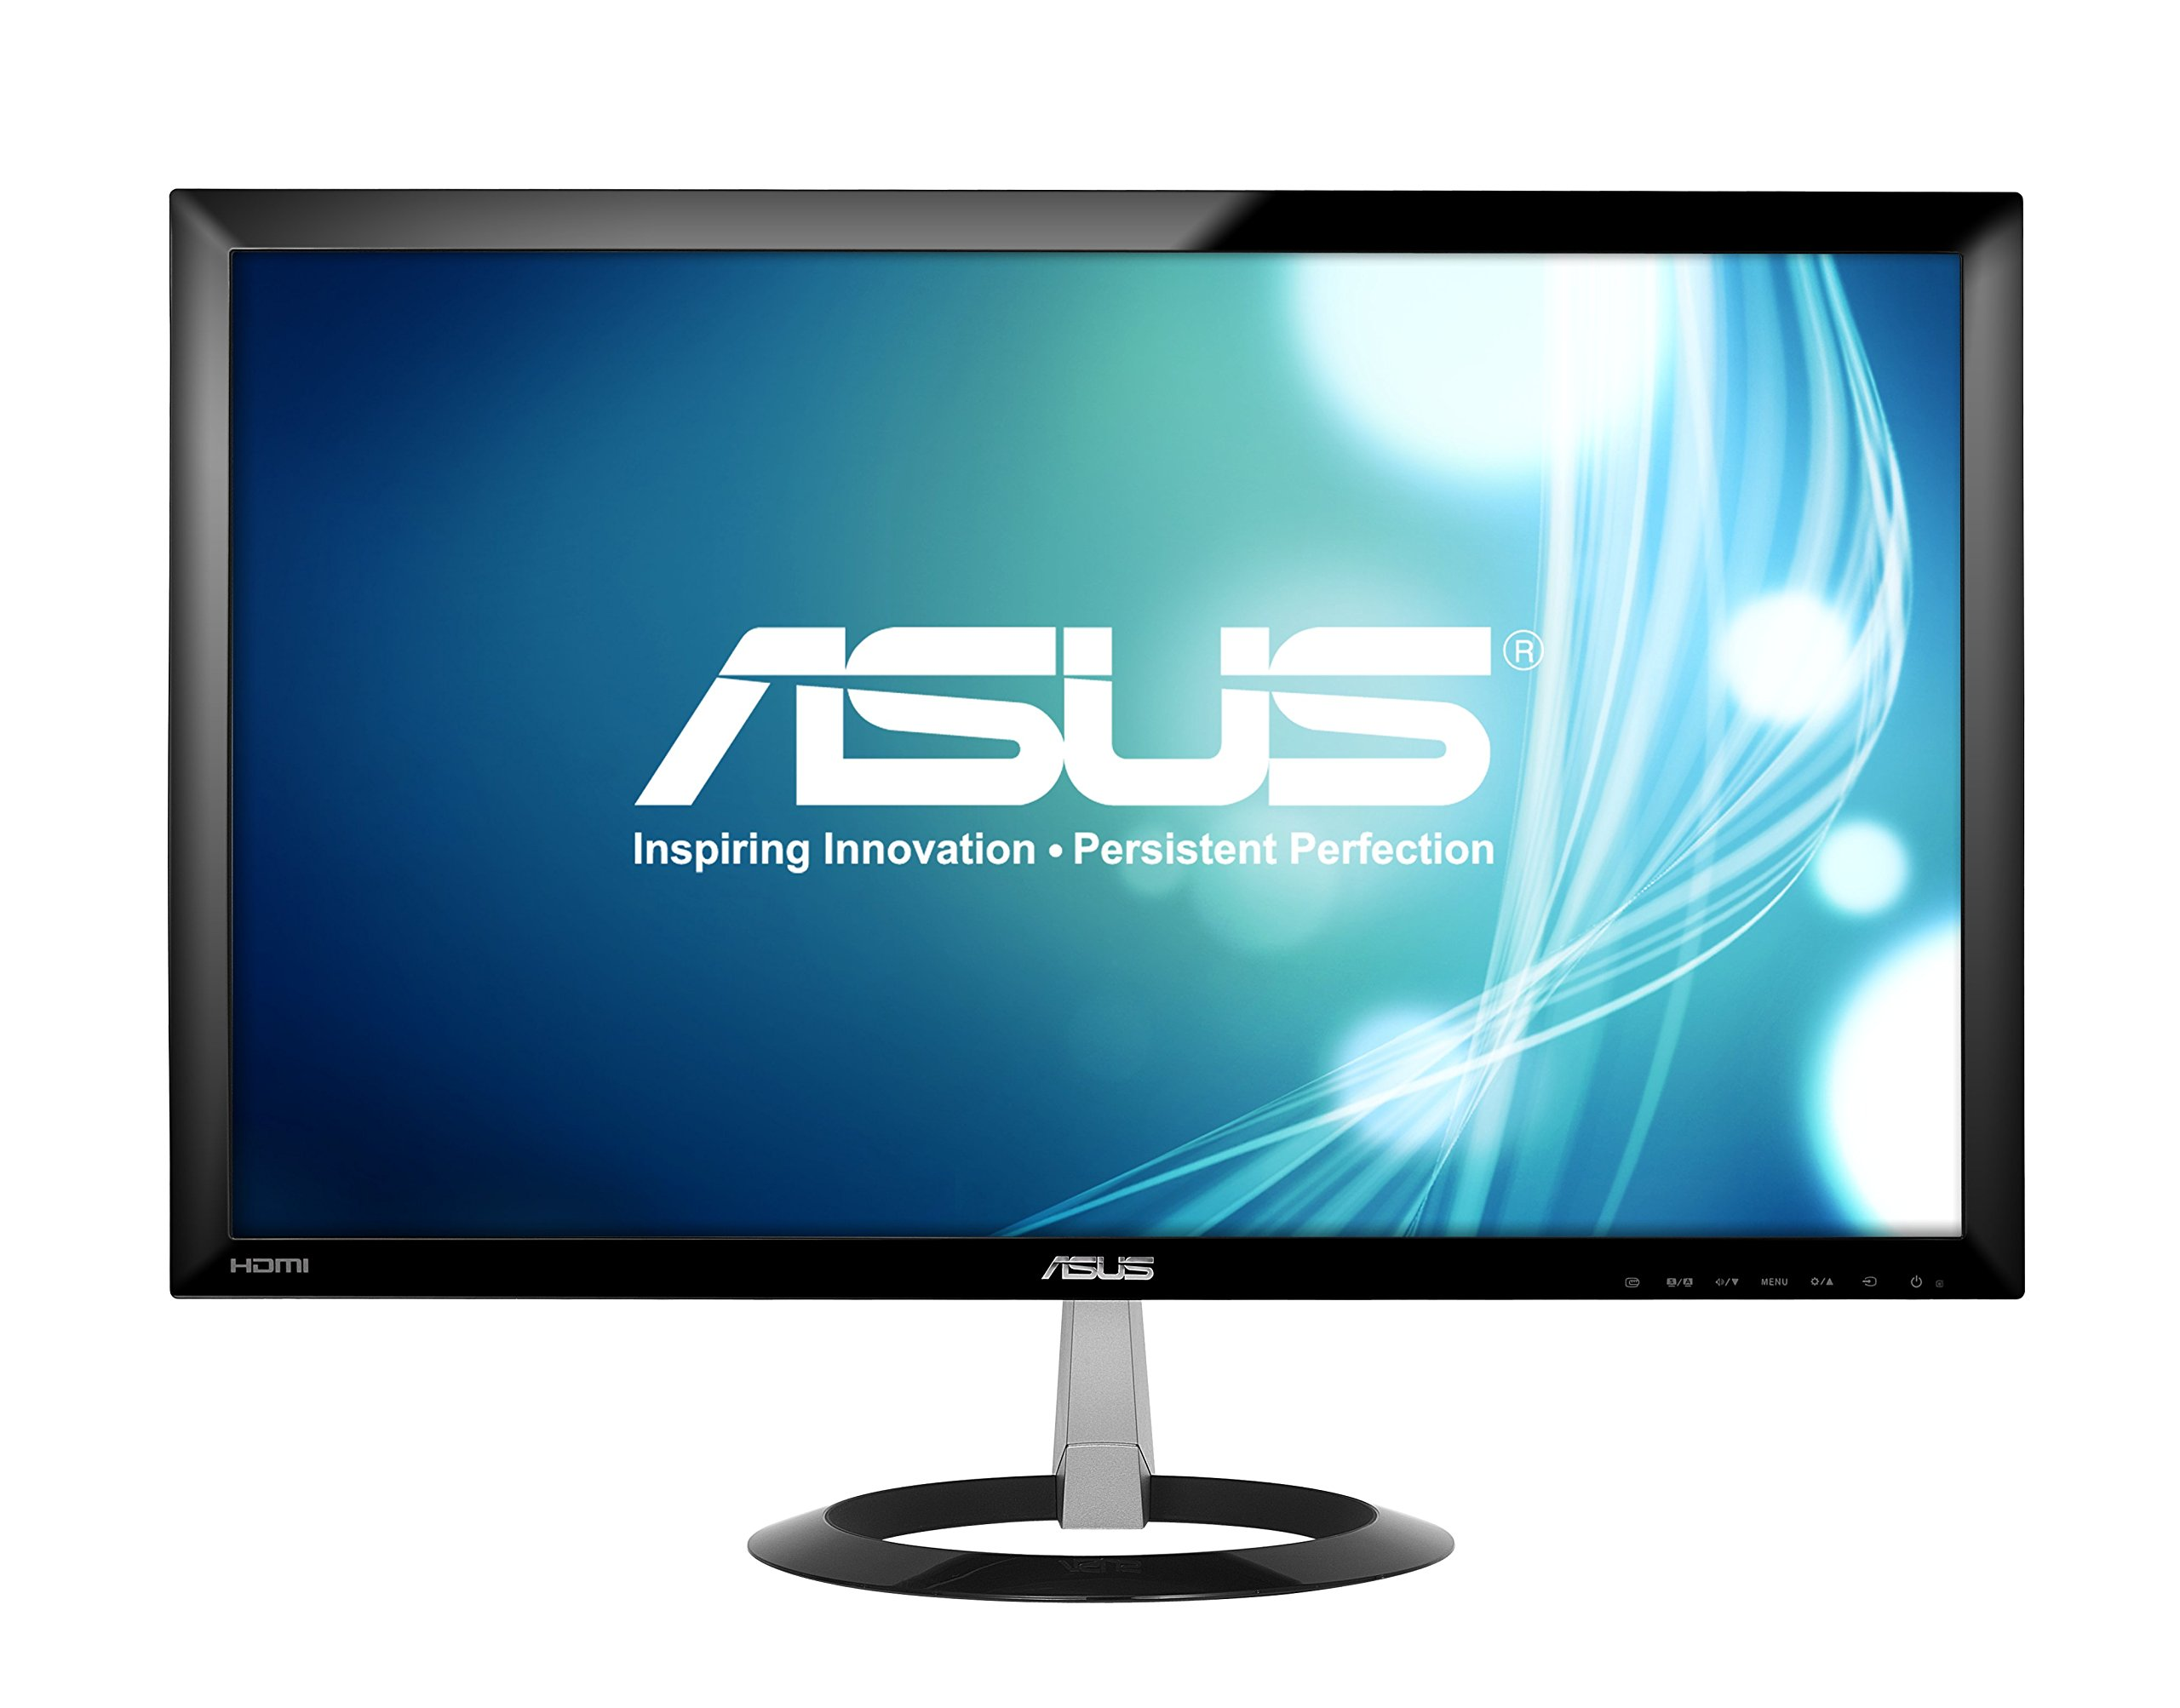 ASUS 23-inch Full HD Wide-Screen Gaming Monitor [VX238H] 1080p, 1ms Rapid Response Time, Dual HDMI, Built in Speakers, Low Blue Light, Flicker Free, ASUS EyeCare by Asus